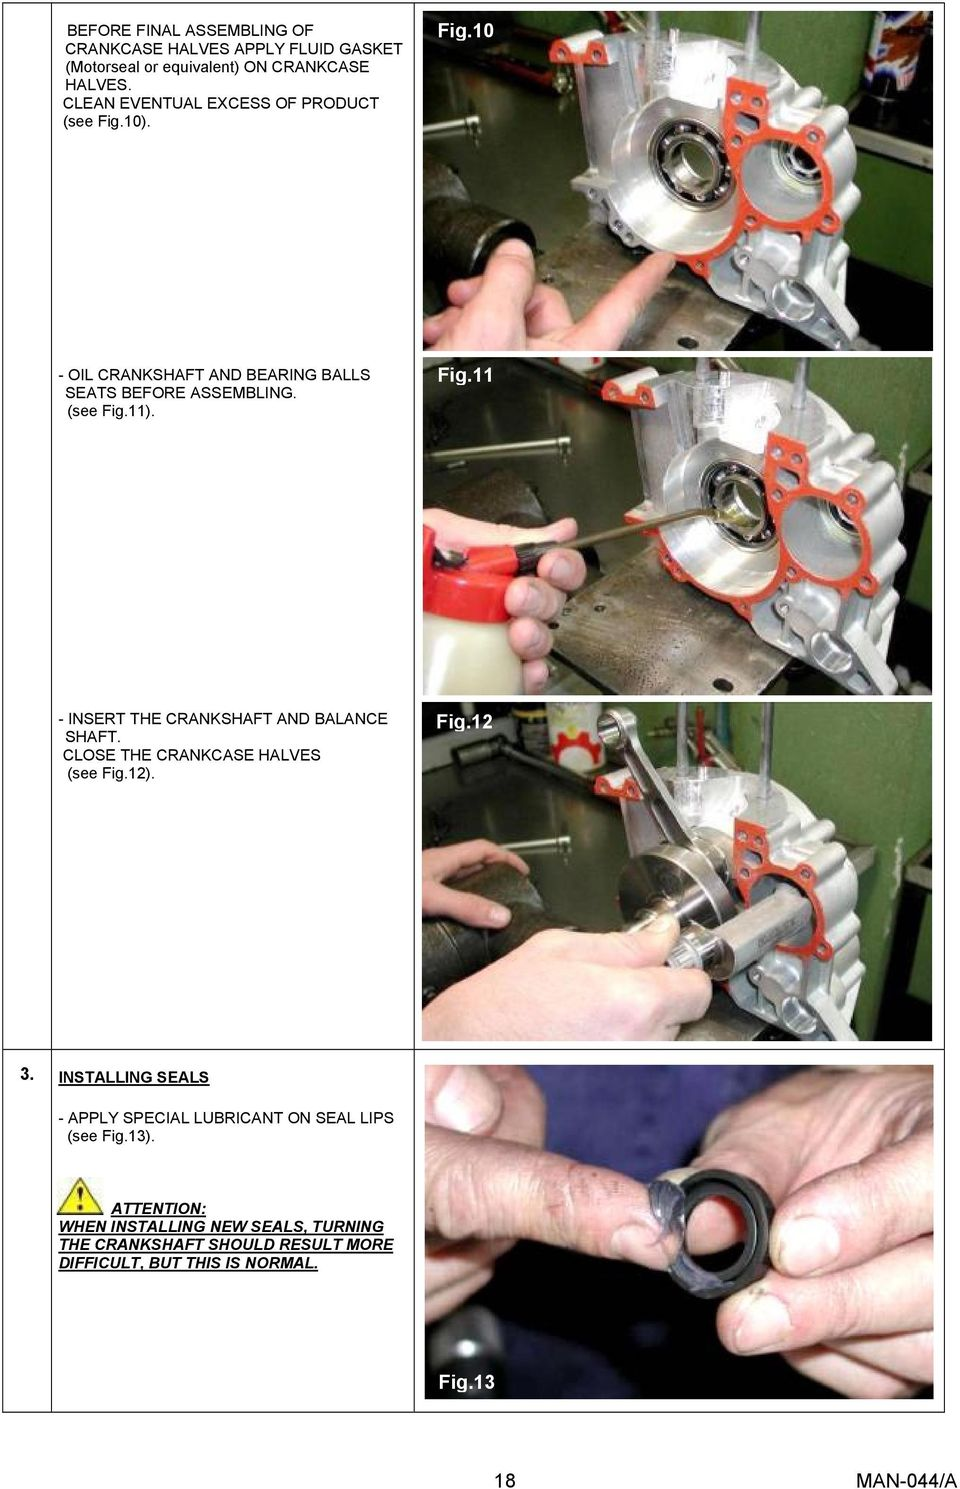 CLOSE THE CRANKCASE HALVES (see Fig.12). Fig.12 3. INSTALLING SEALS - APPLY SPECIAL LUBRICANT ON SEAL LIPS (see Fig.13).